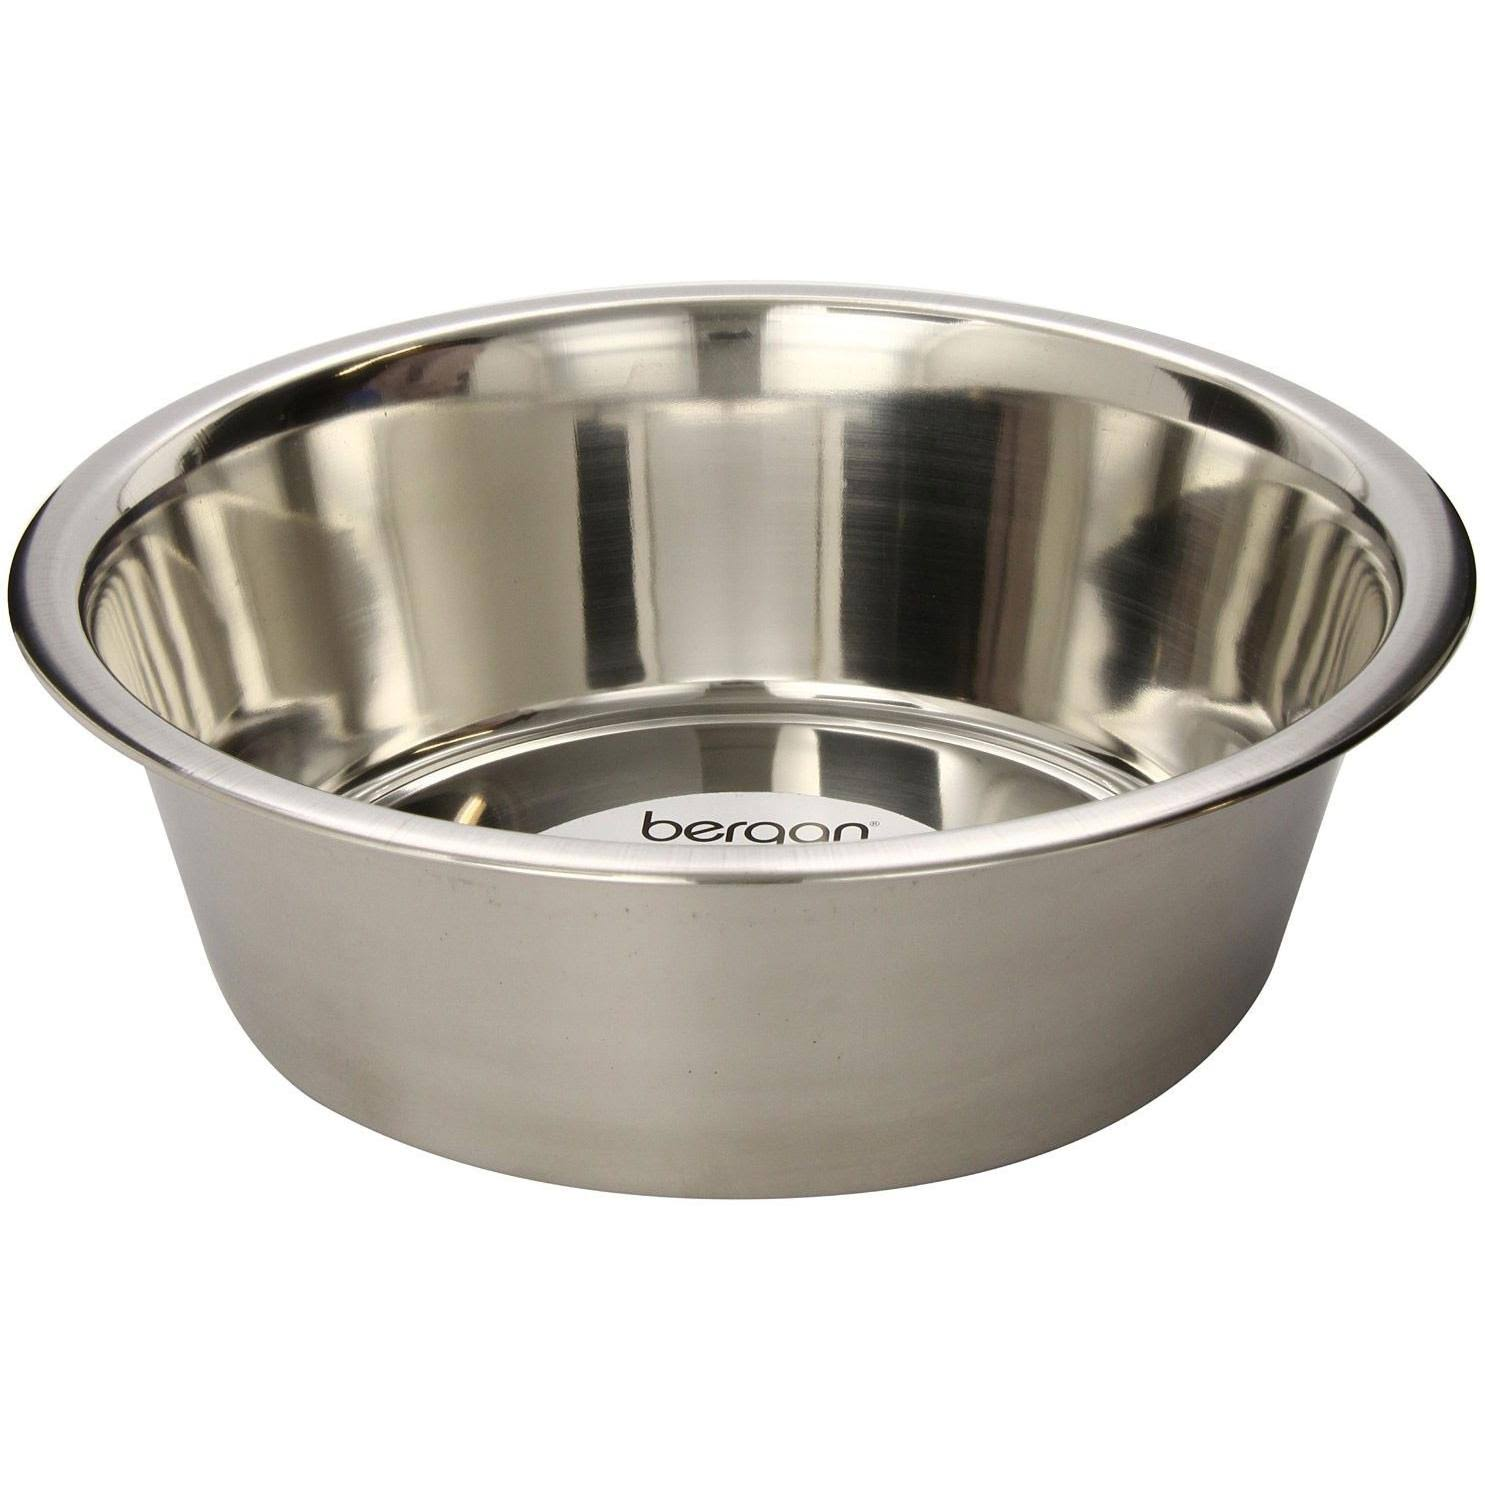 Bergan Stainless Steel Dog Bowl - 17 Cup